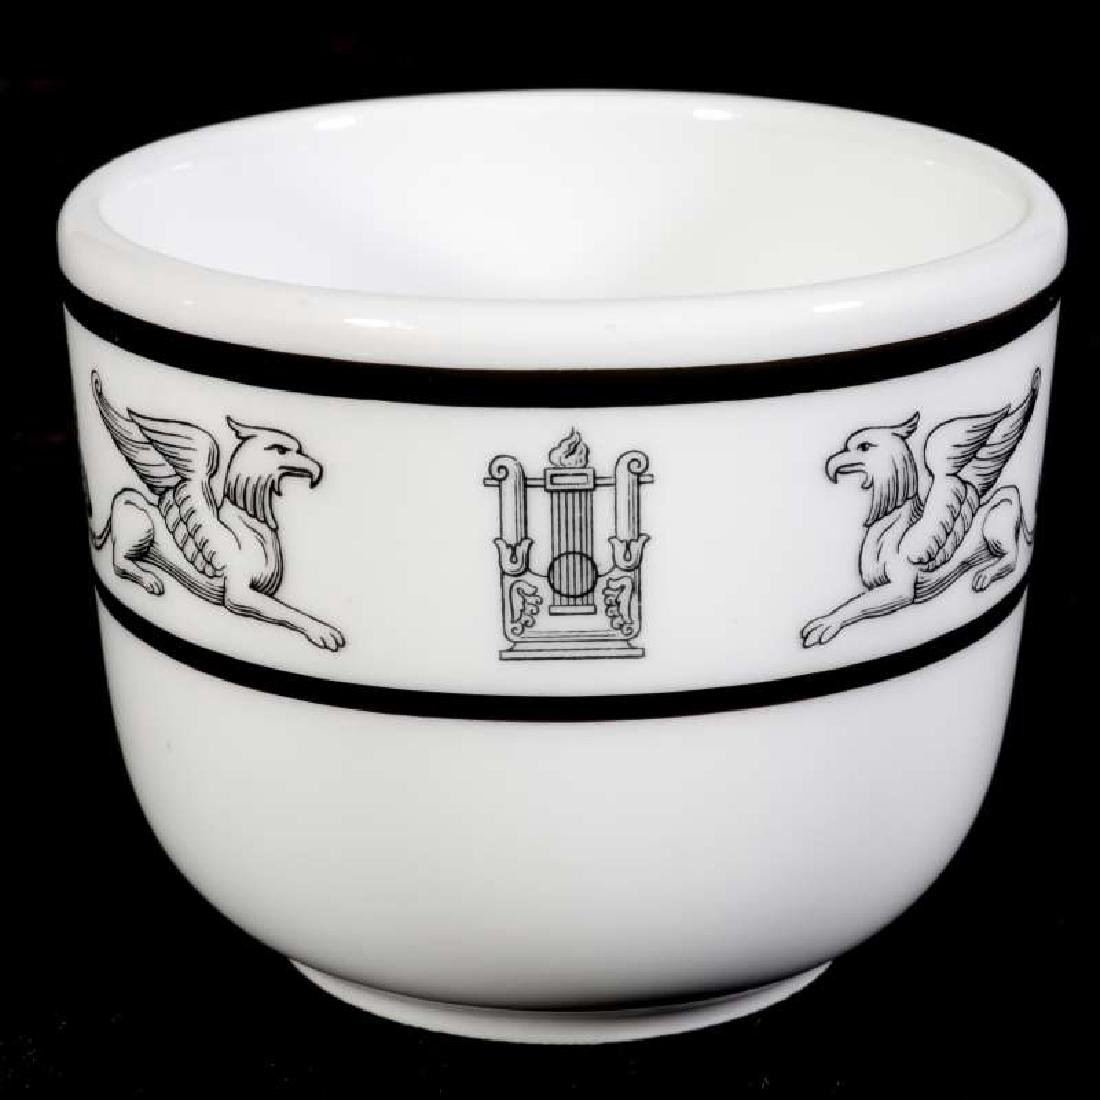 AT&SF SANTA FE RR GRIFFON COFFEE CUP AND SAUCER - 5